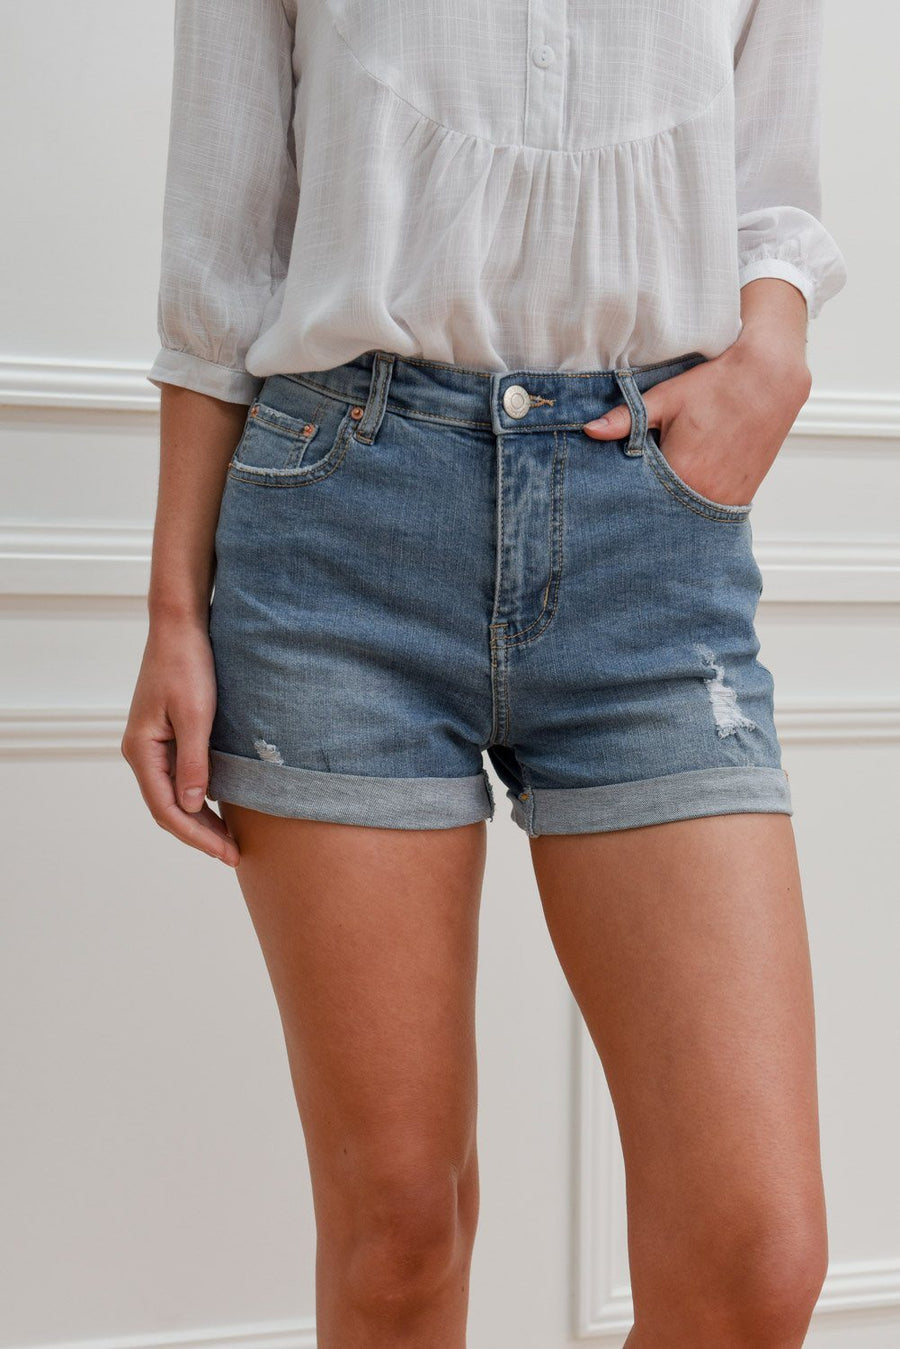 Eve Denimn Shorts | Light Blue Shorts Gray Label